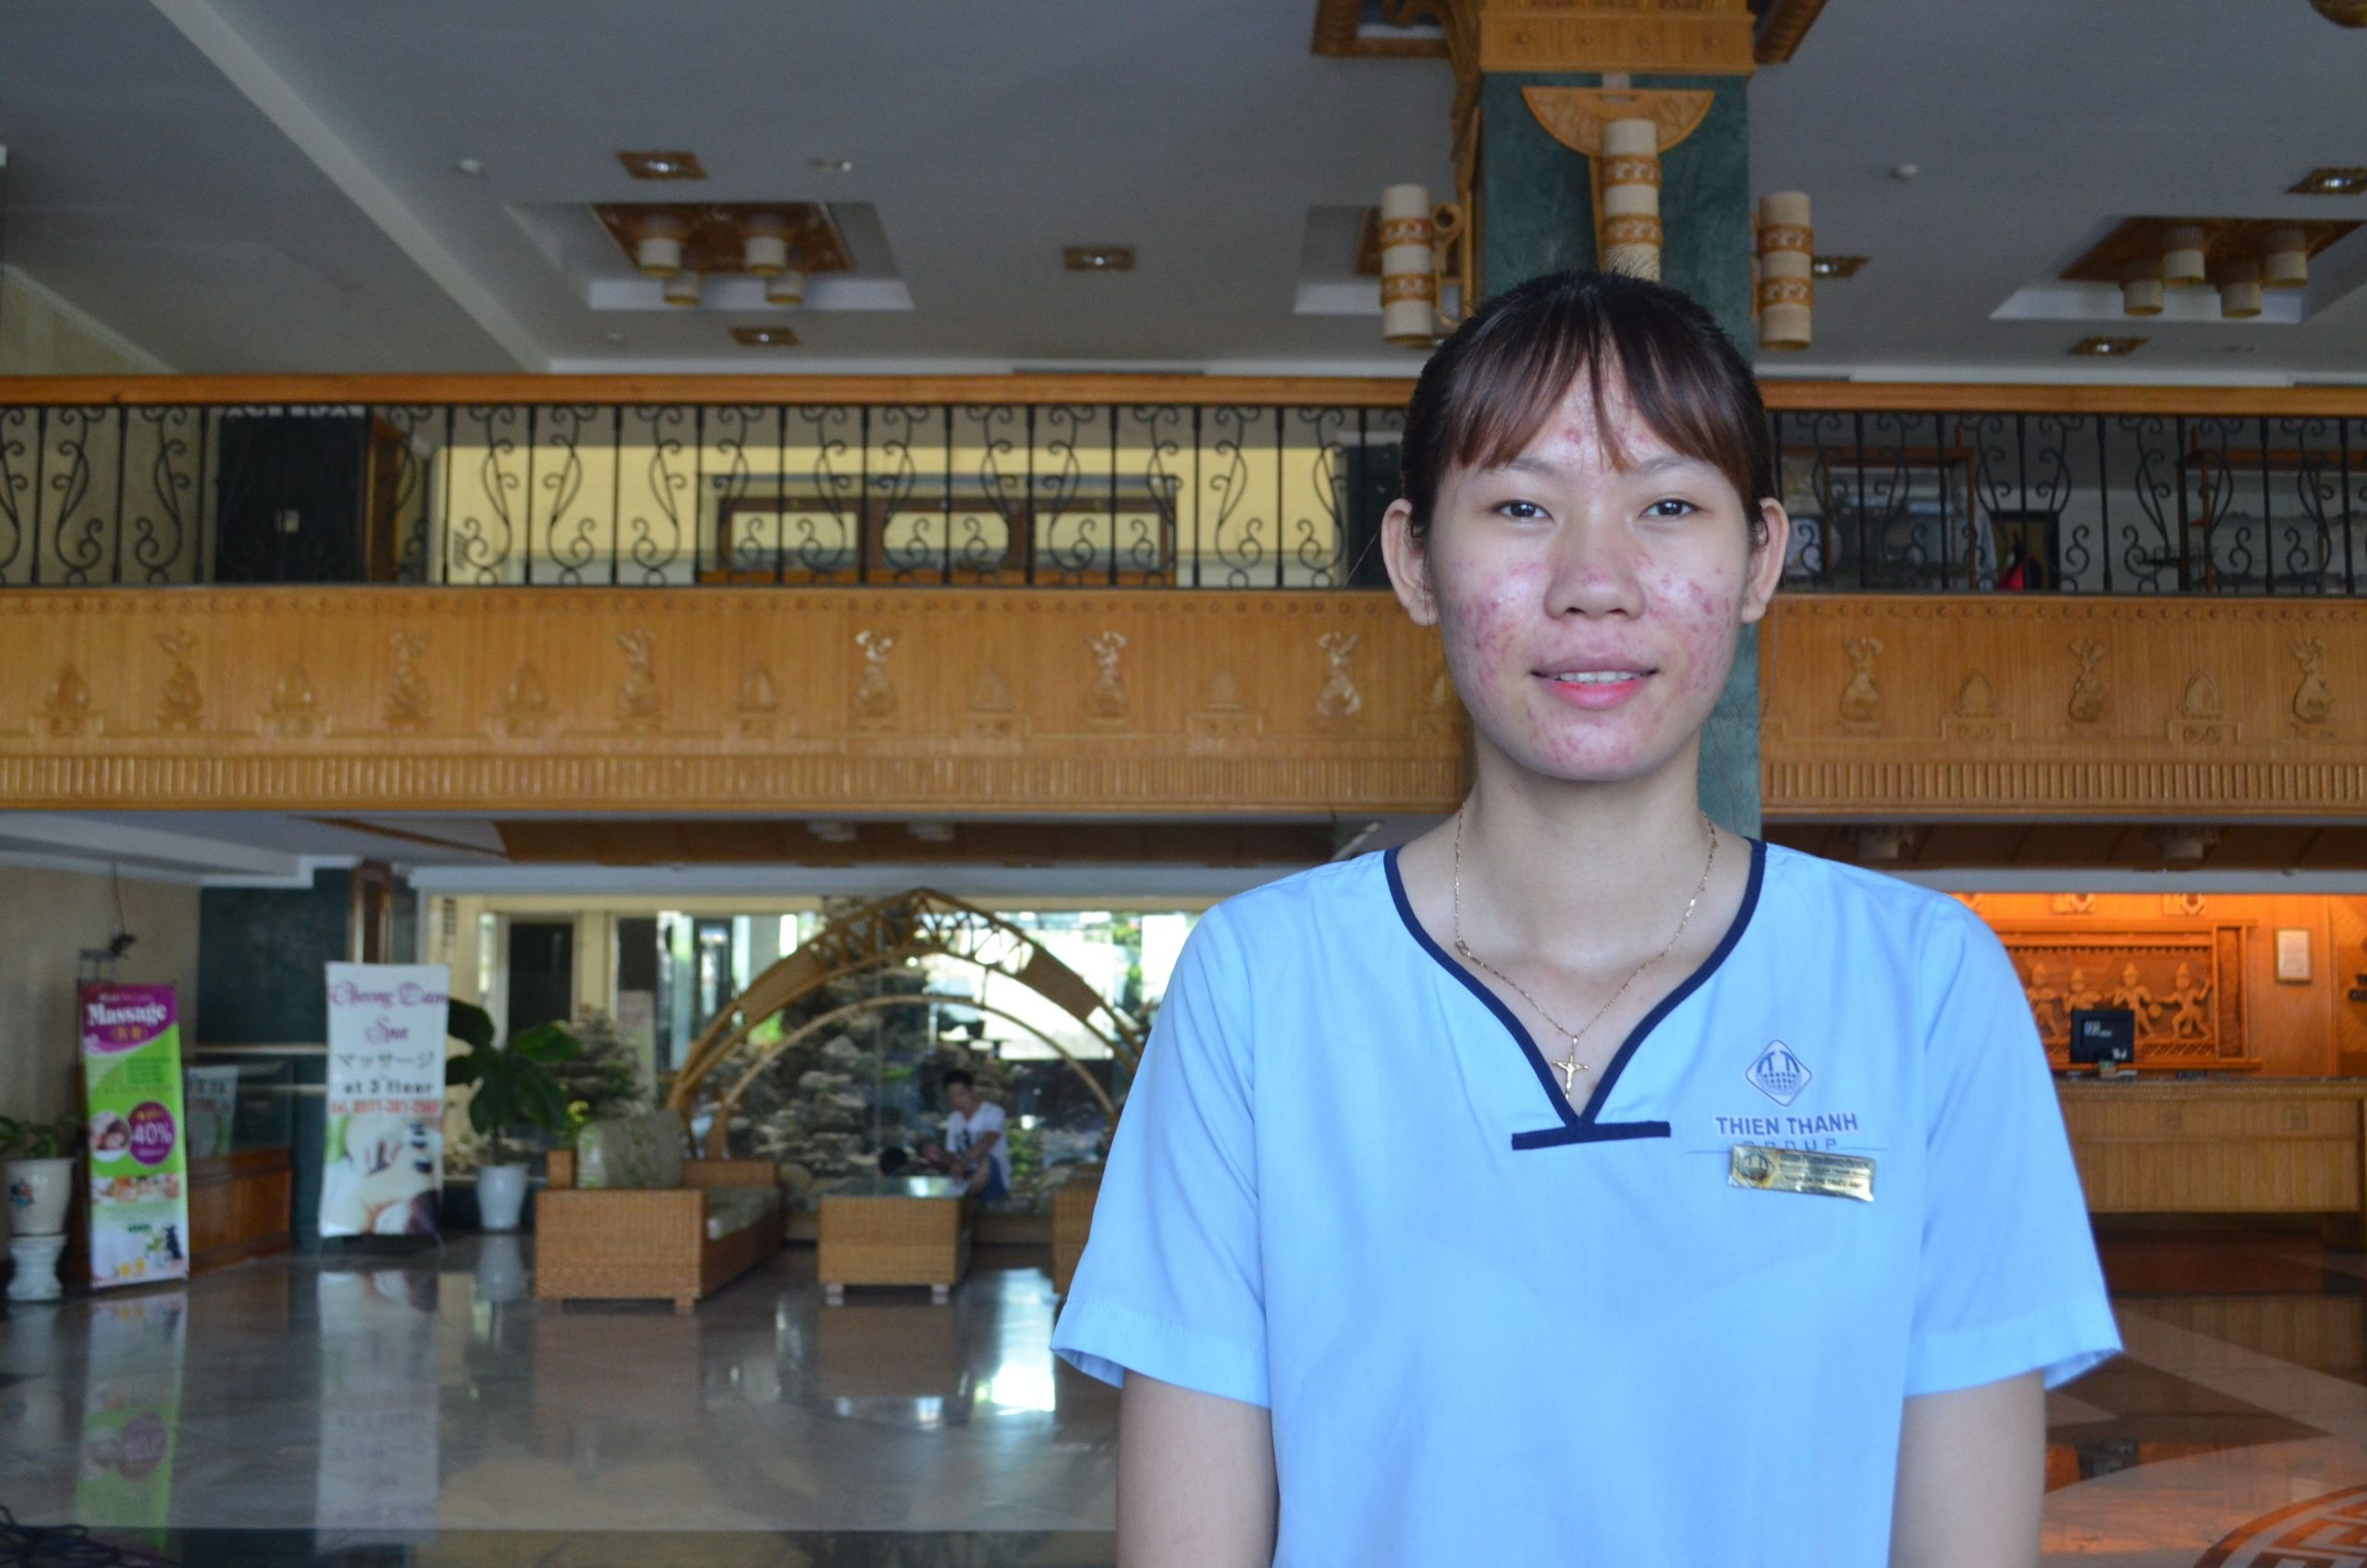 Trieu Anh Thi Nguyen a housekeeping student at REACH